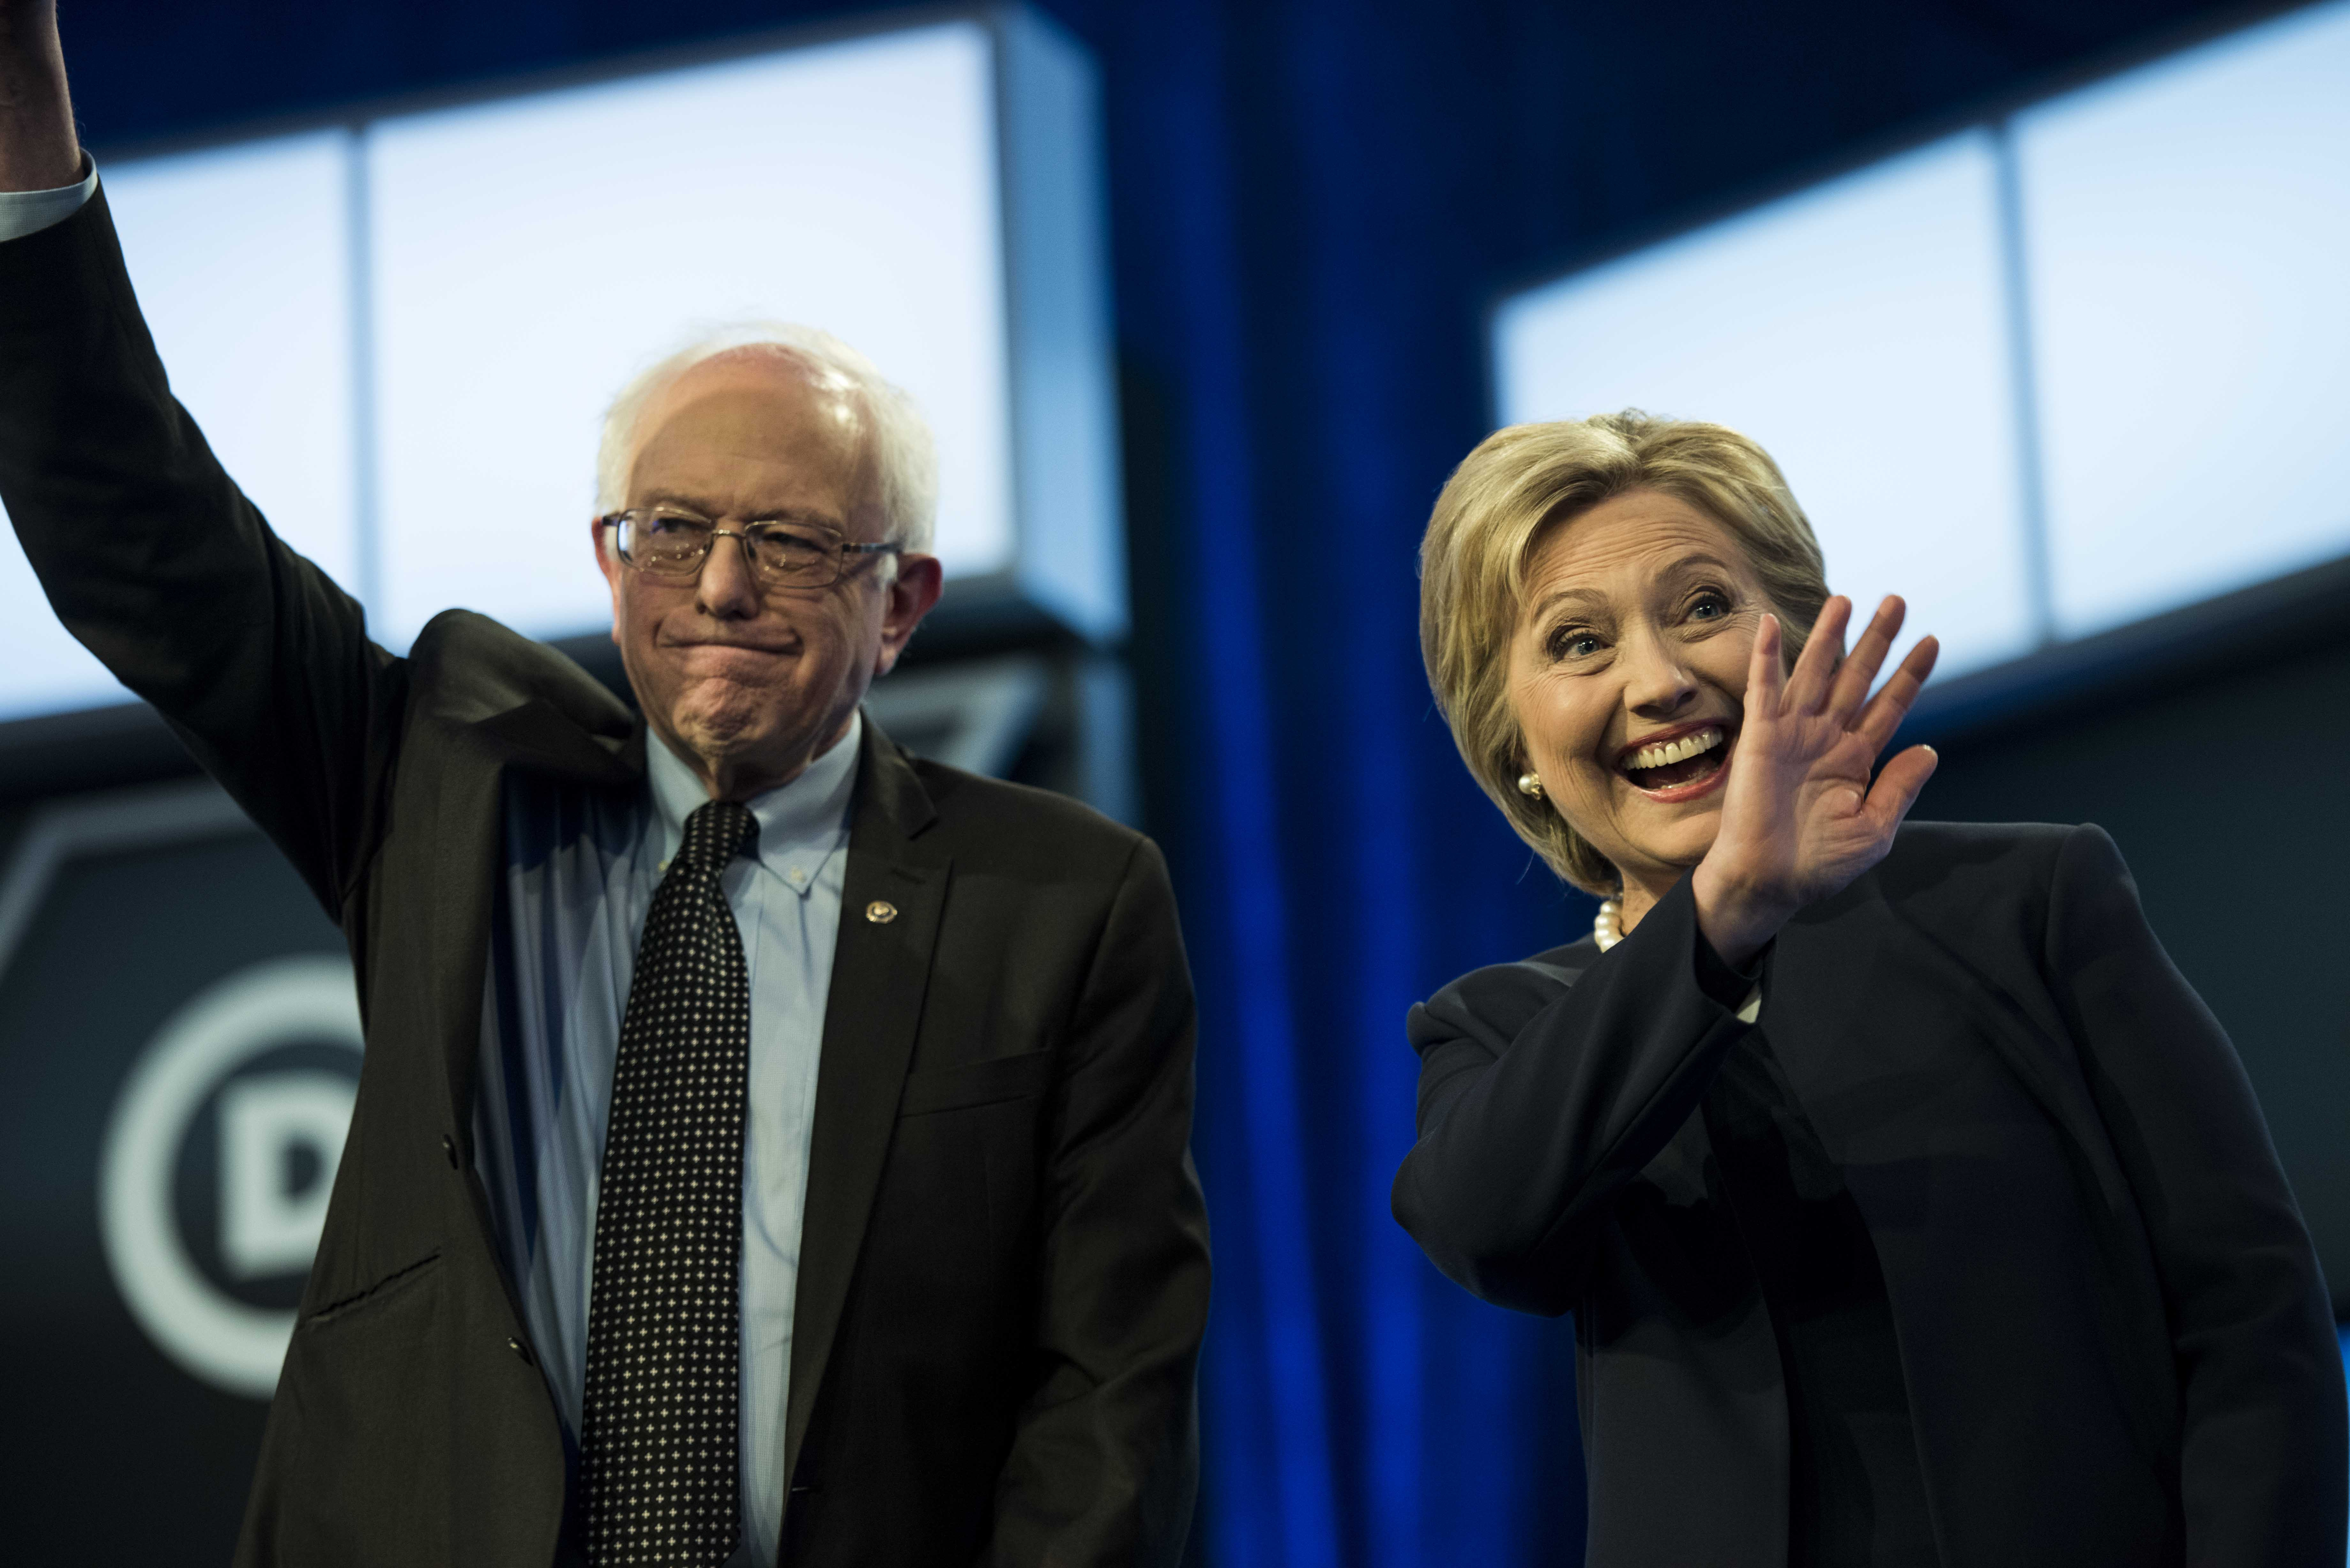 Former Secretary of State Hillary Clinton and Sen. Bernie Sanders participate in the Univision News and Washington Post Democratic Presidential Primary Debate in Miami, Fla., on March, 9.